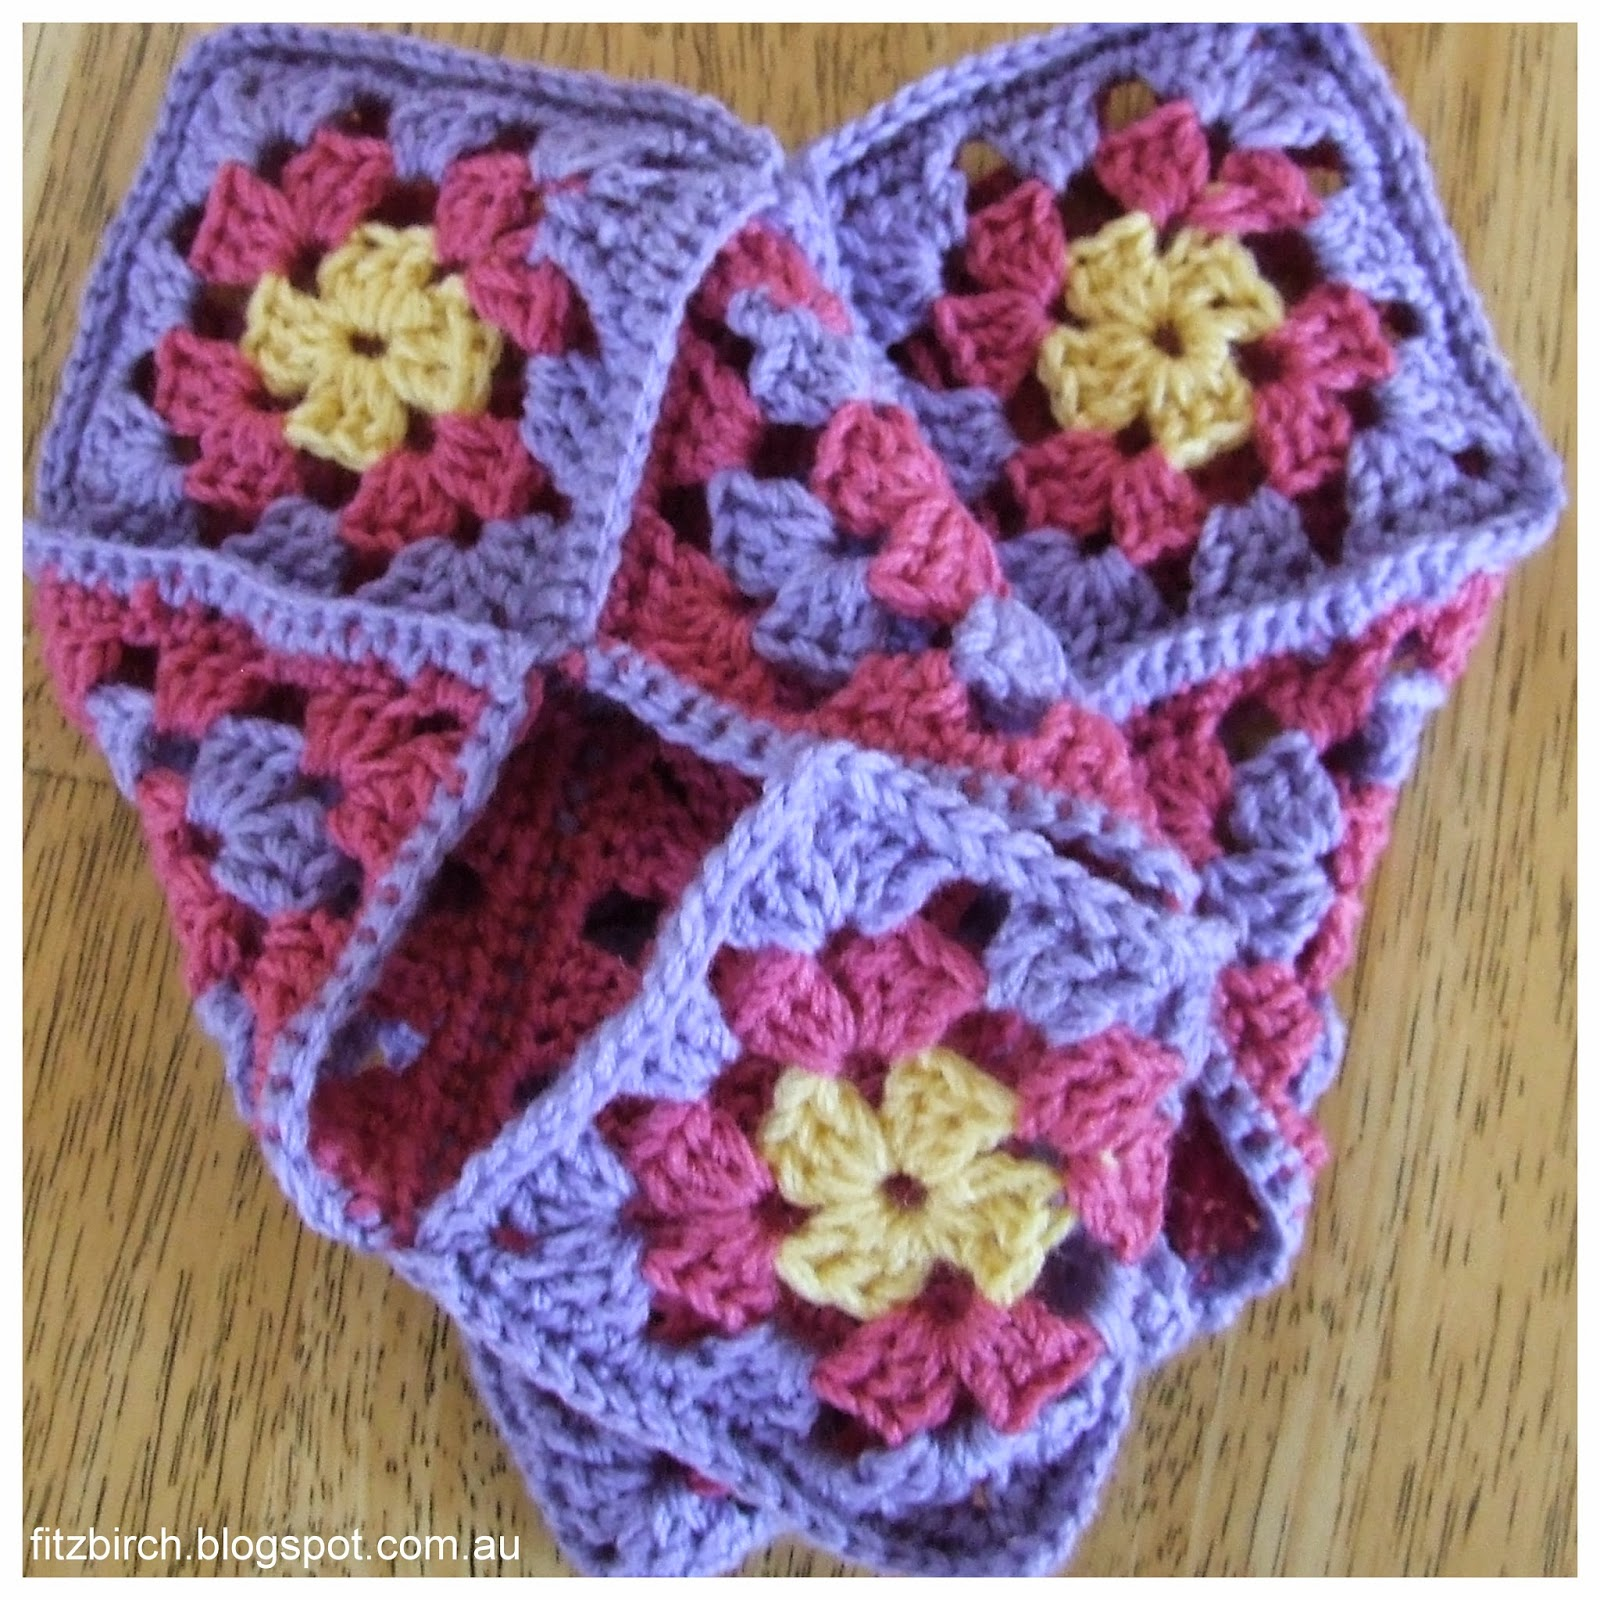 FitzBirch Crafts: Granny Square Slippers